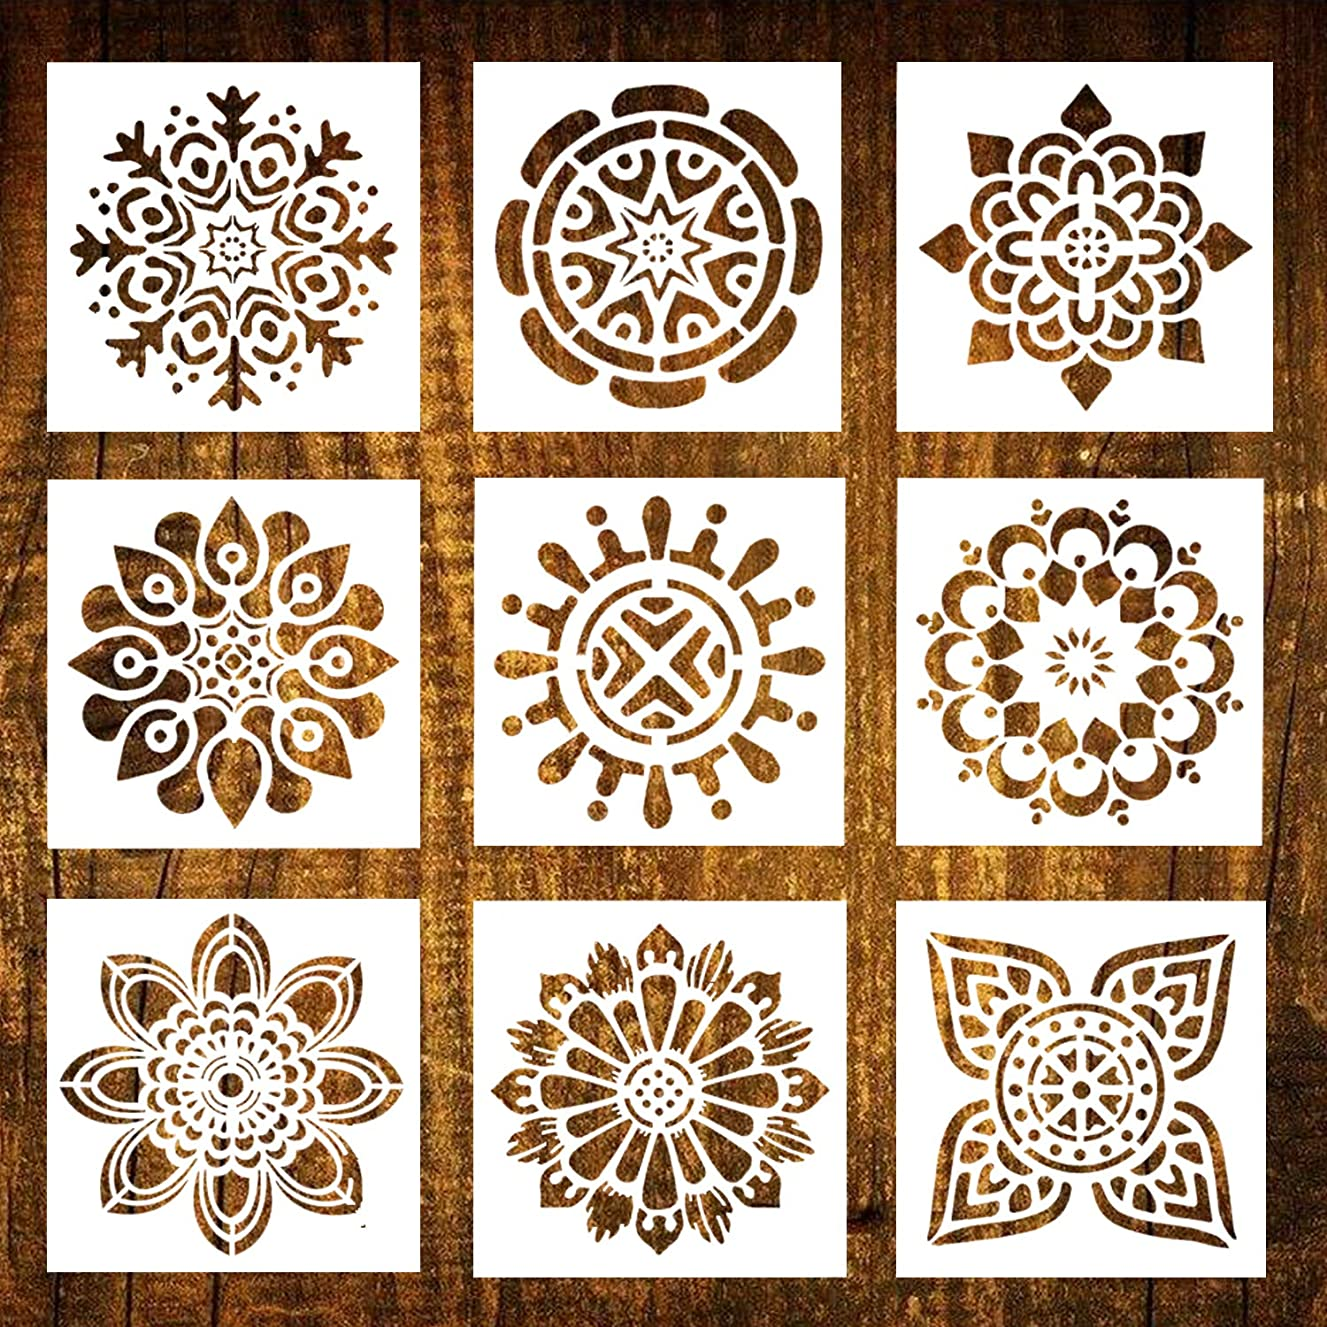 Mandala Painting Stencils Reusable Stencil Laser Cut Painting Template Floor Wall Tile Fabric Wood Furniture Stencils, Set of 9 (6x6 inch)